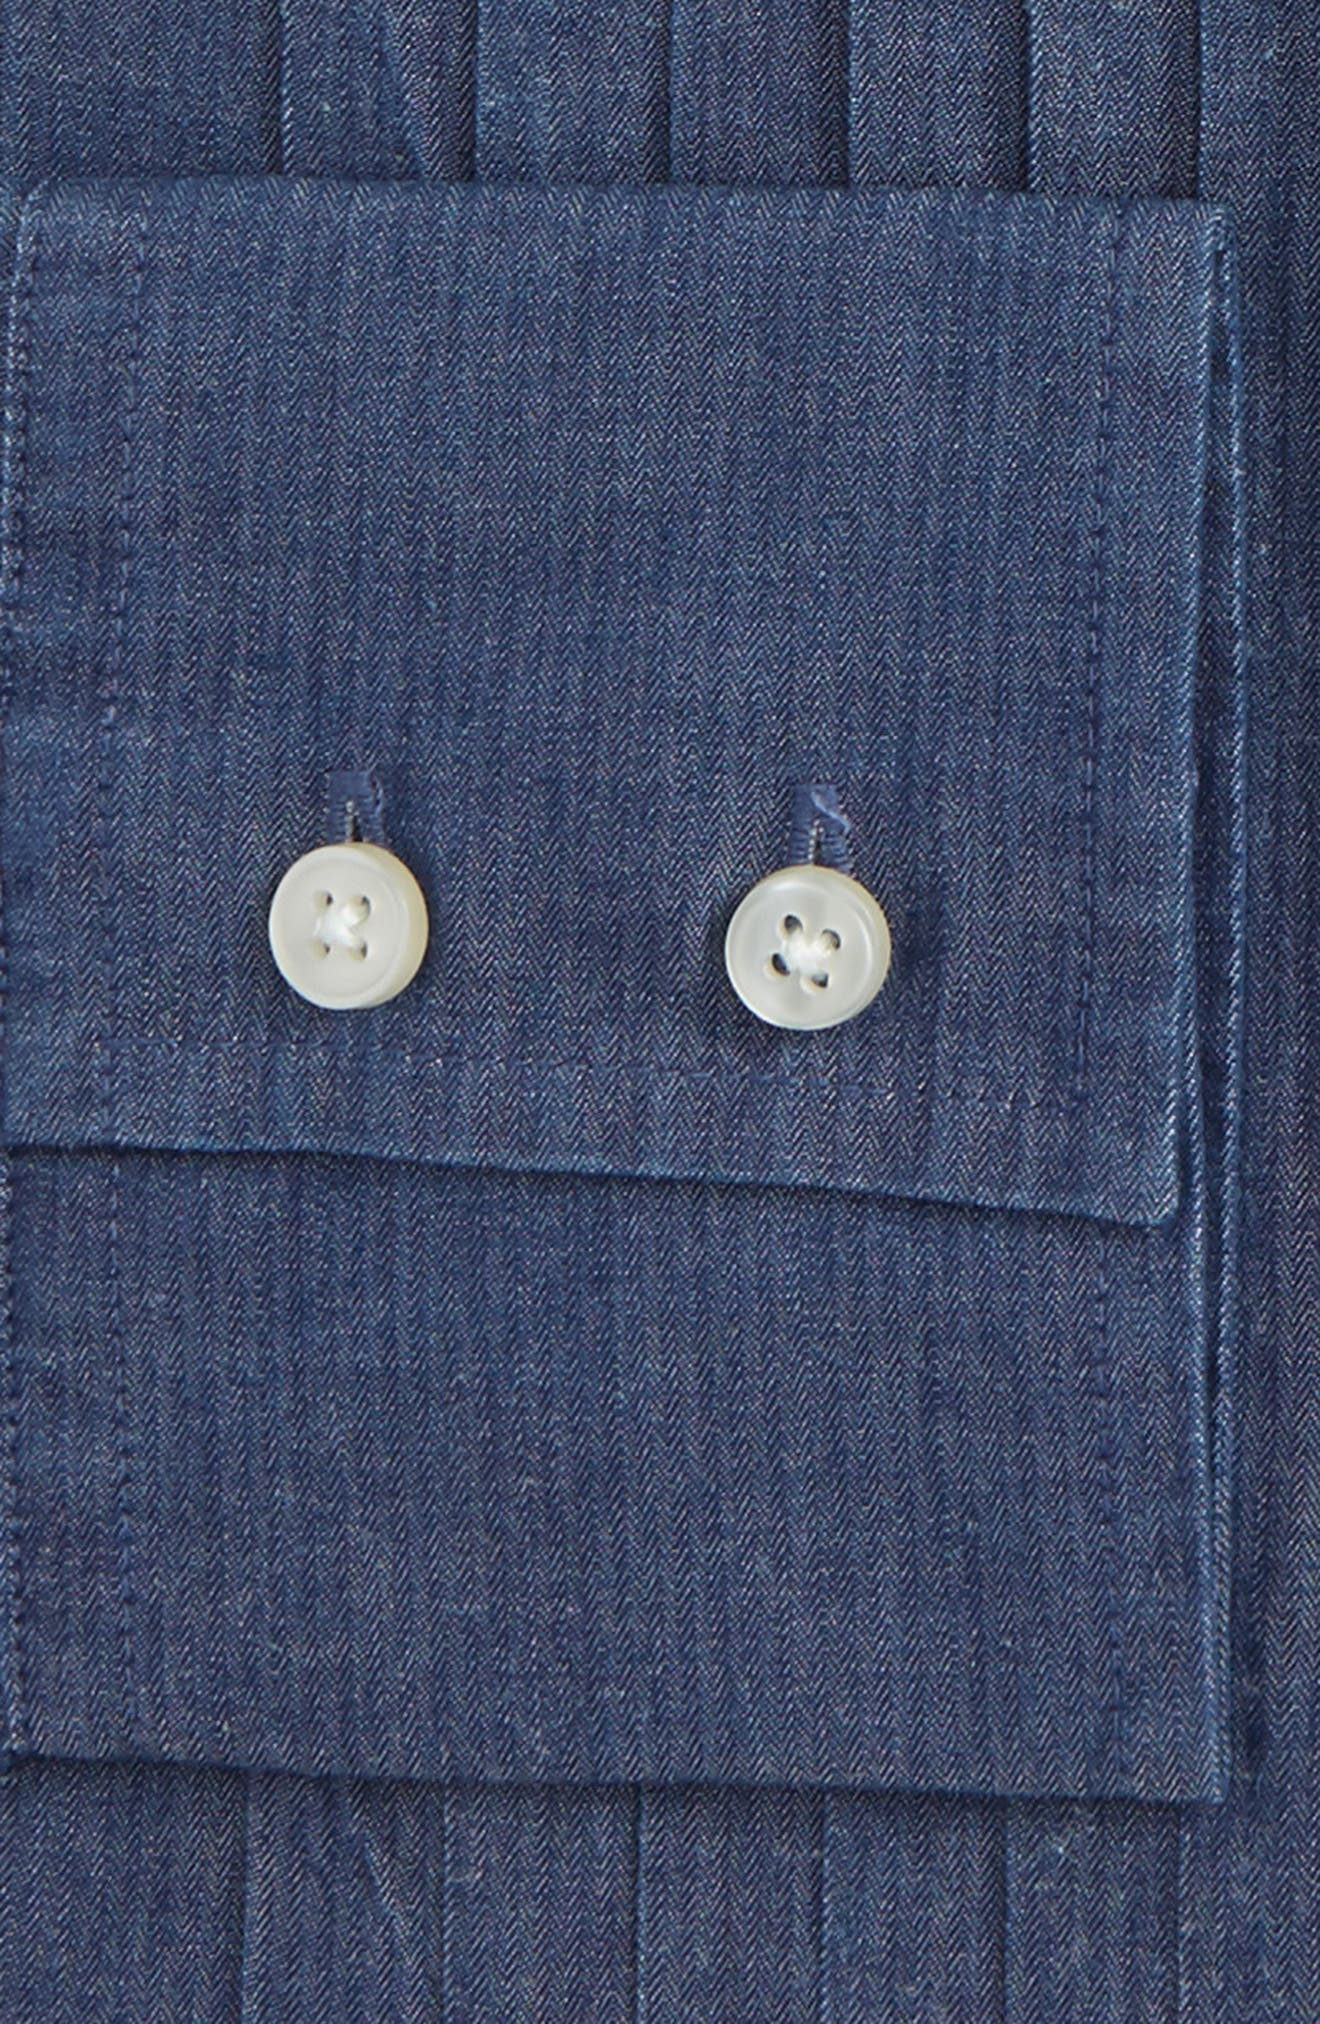 Trim Fit Denim Dress Shirt,                             Alternate thumbnail 2, color,                             Denim